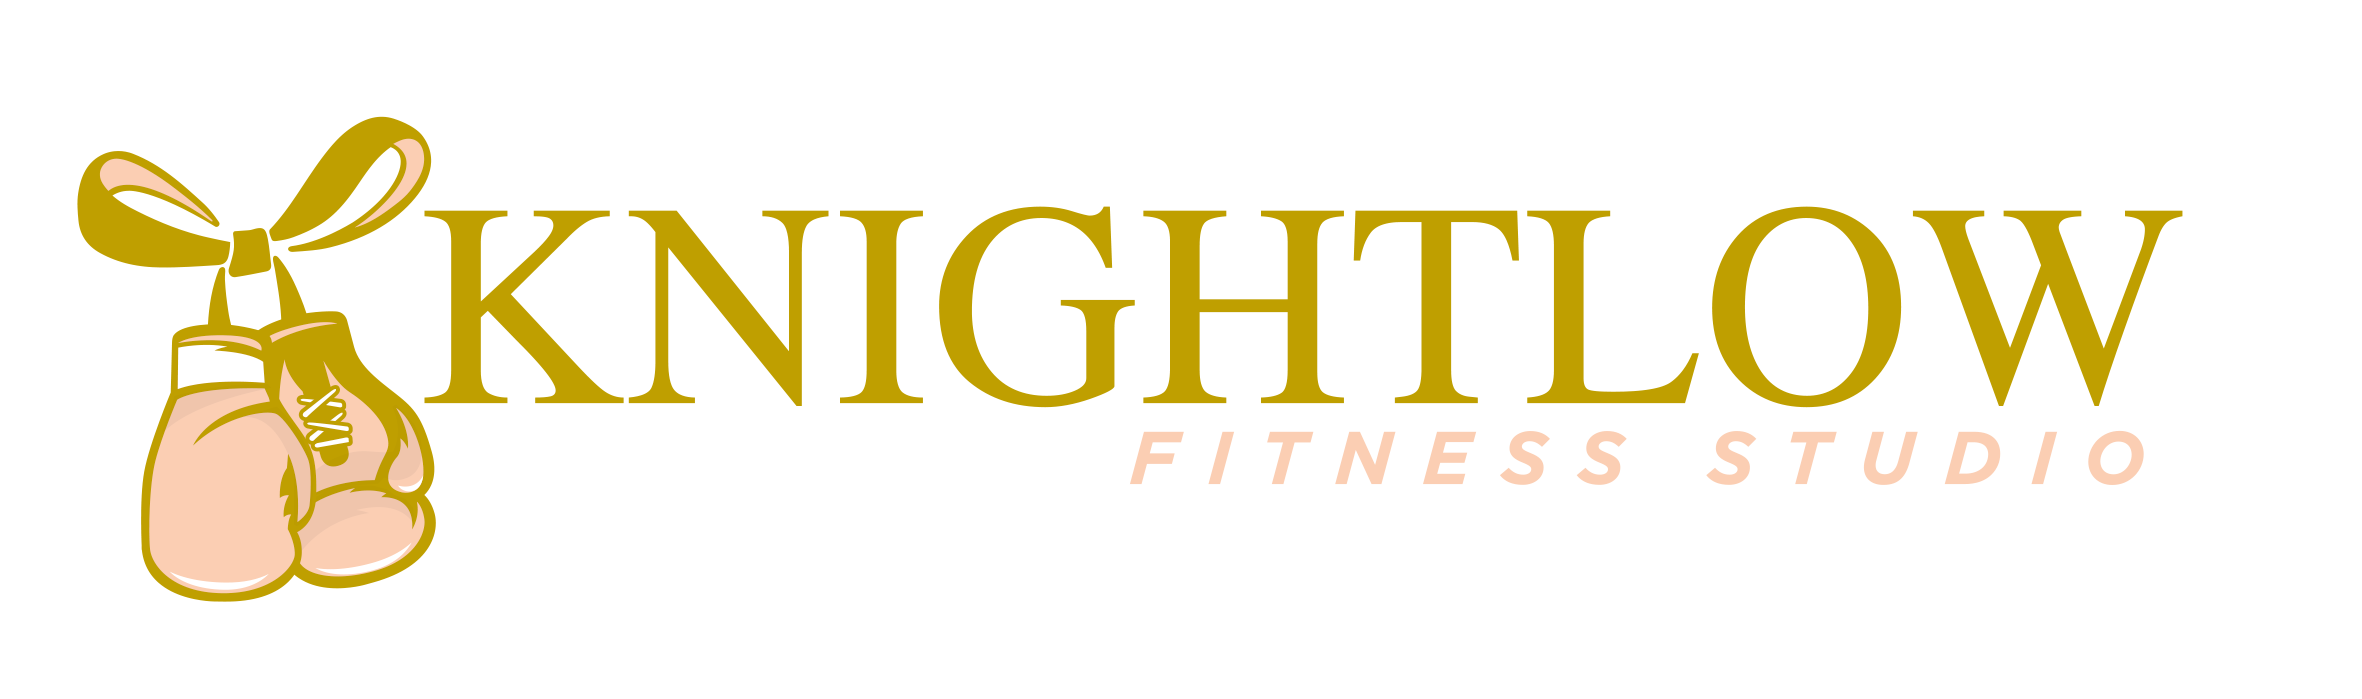 Knightlow Fitness Studio